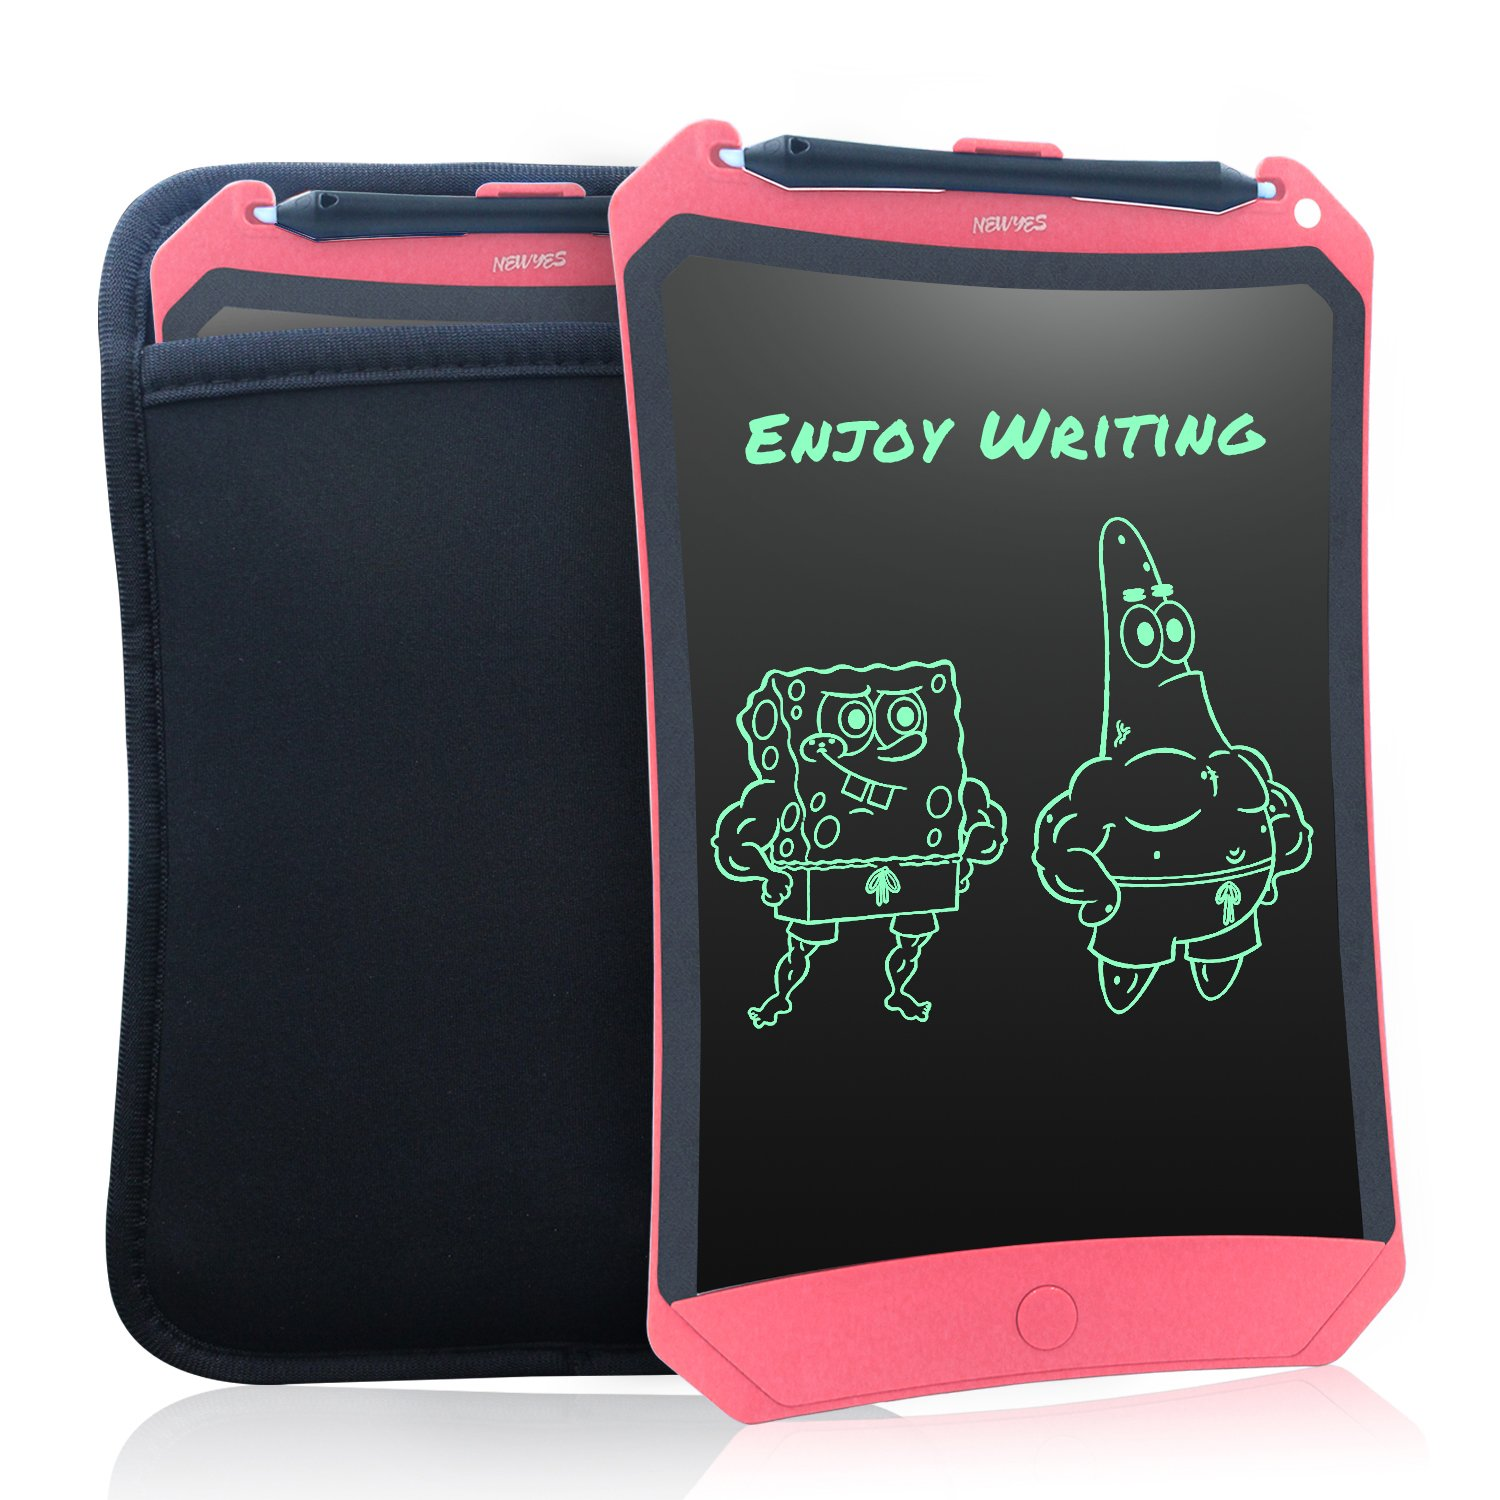 WOBEECO 8.5 inch LCD Writing Tablet Robot Pad Pink with Case